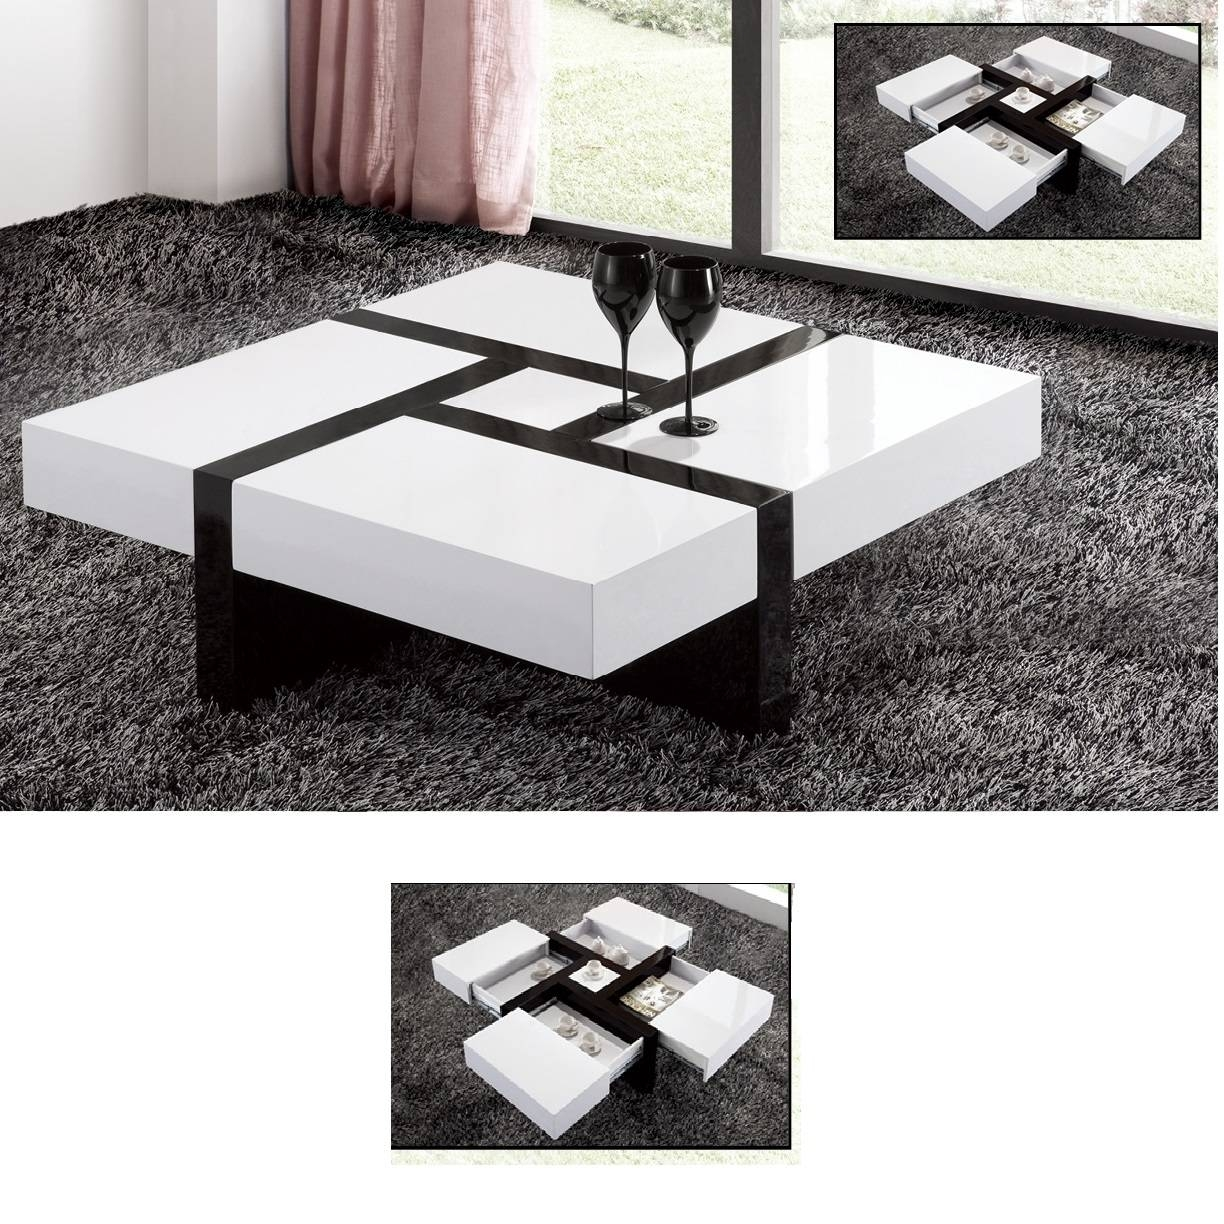 High Gloss White Coffee Table With Storage | Coffee Tables Decoration in White Gloss Coffee Tables (Image 15 of 30)